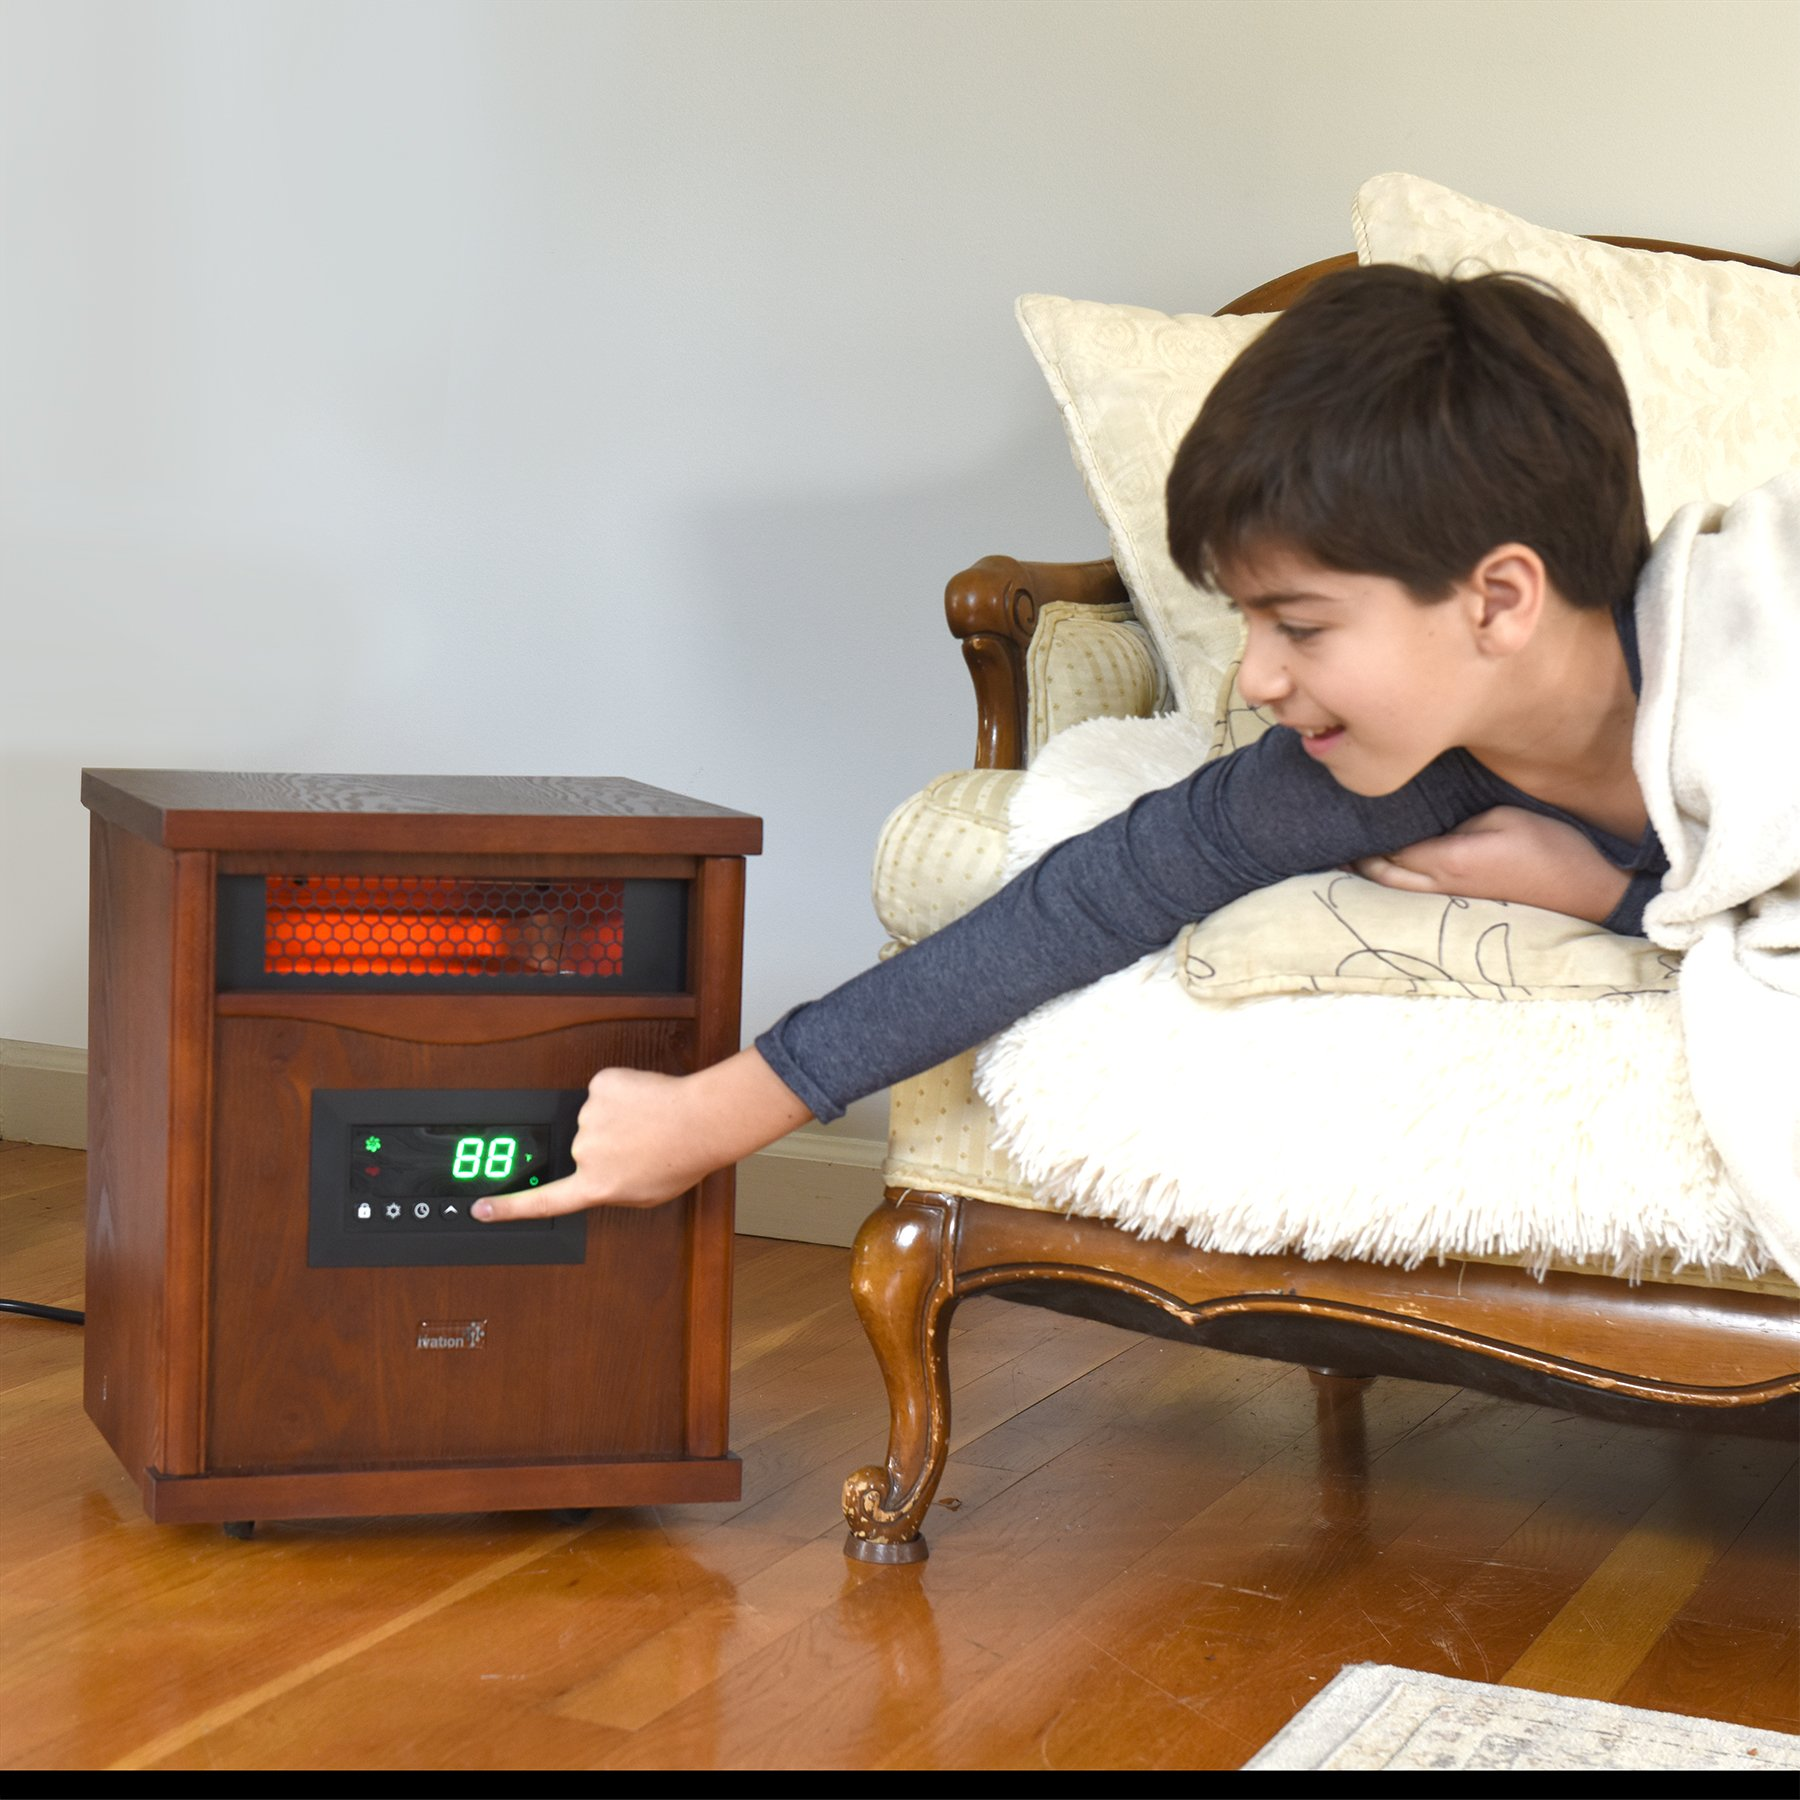 Ivation Portable Electric Space Heater, 1500-Watt 6-Element Infrared Quartz Mini Heater With Digital Thermostat, Remote Control, Timer & Filter by Ivation (Image #8)